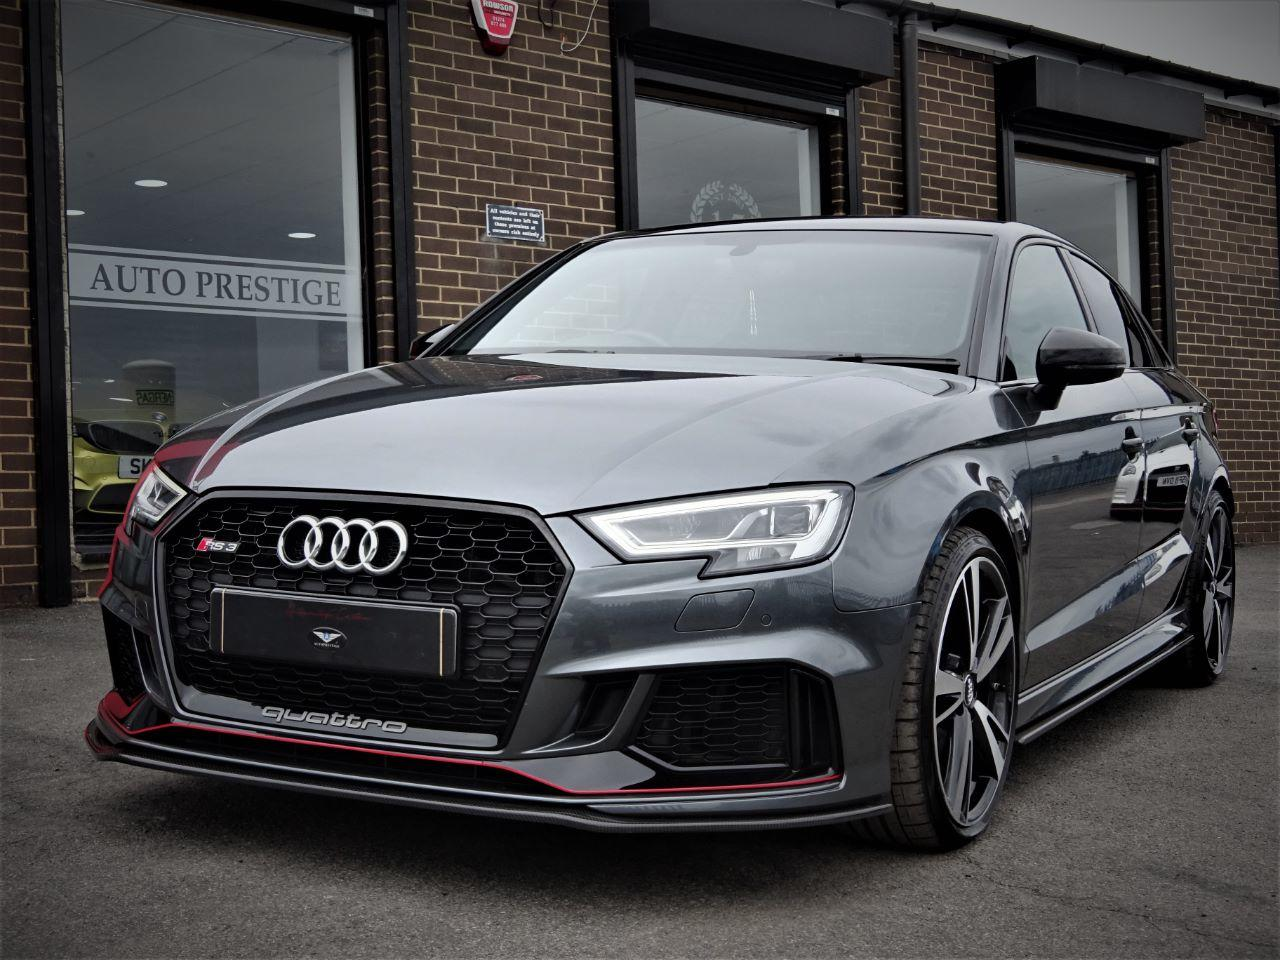 Audi RS3 2.5 TFSI RS 3 Quattro 4dr S Tronic WITH EXTRAS 68 REG AS  NEW LOW MILEAGE CARBON AERO PACK Saloon Petrol Daytona Grey Pearl Effect at Autoprestige Bradford